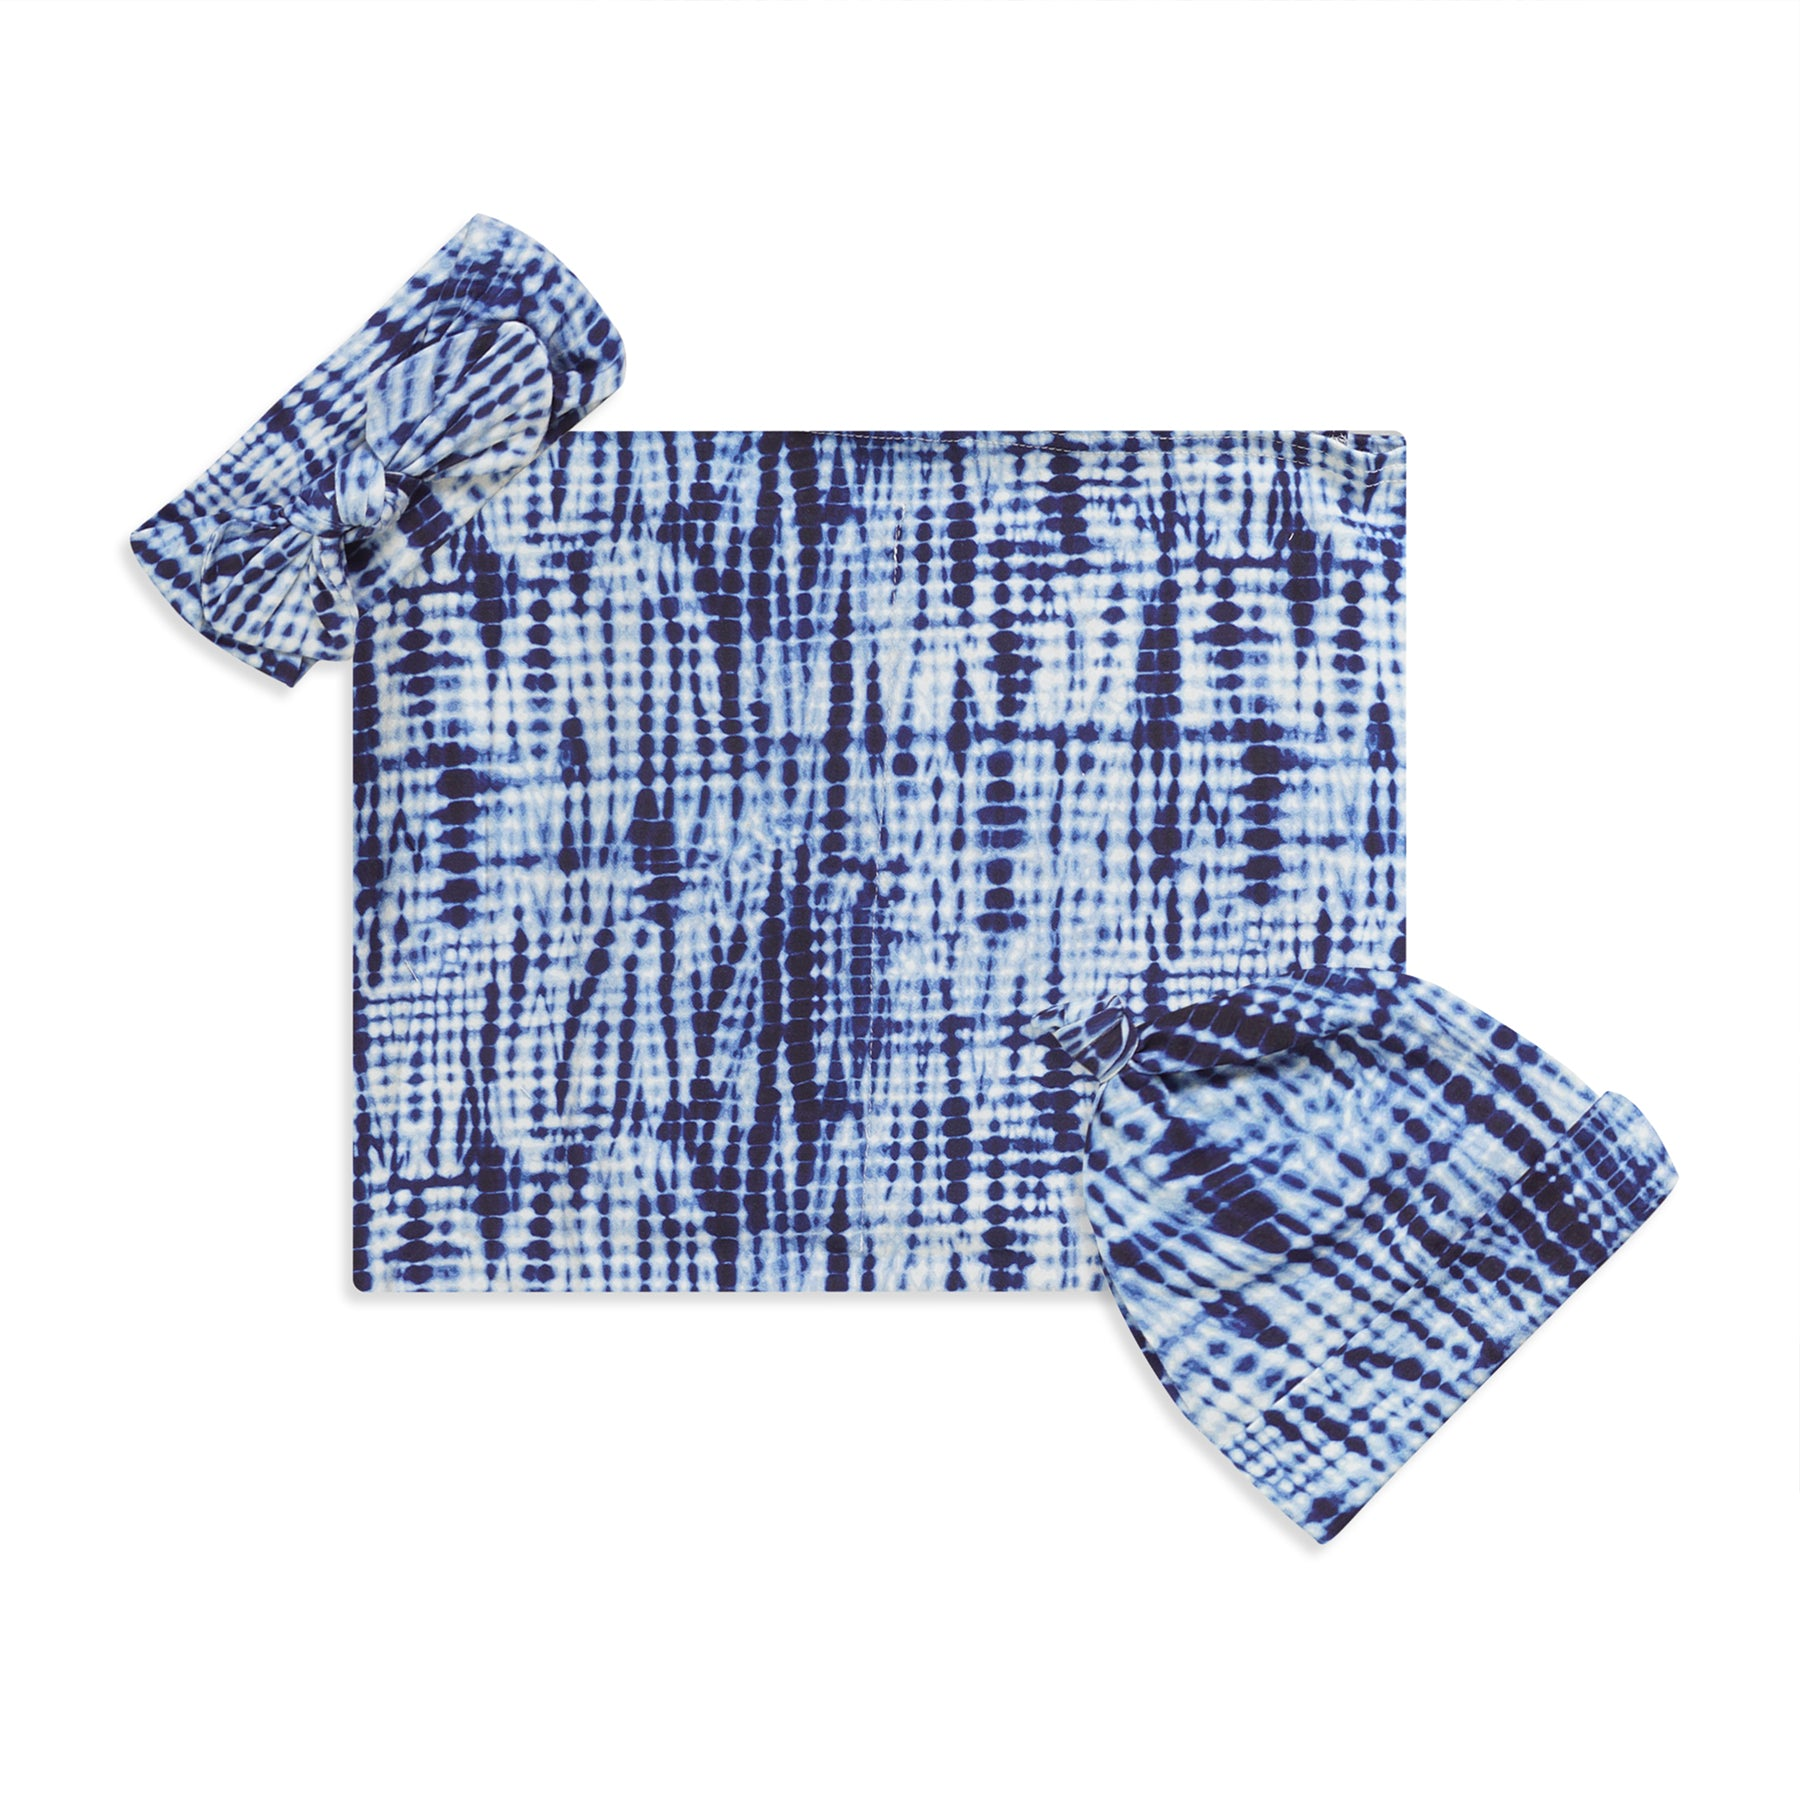 Shibori Printed Swaddle Set For Newborn Baby Boy And Girl With Organic Maternity Robe | Comfy Mommy